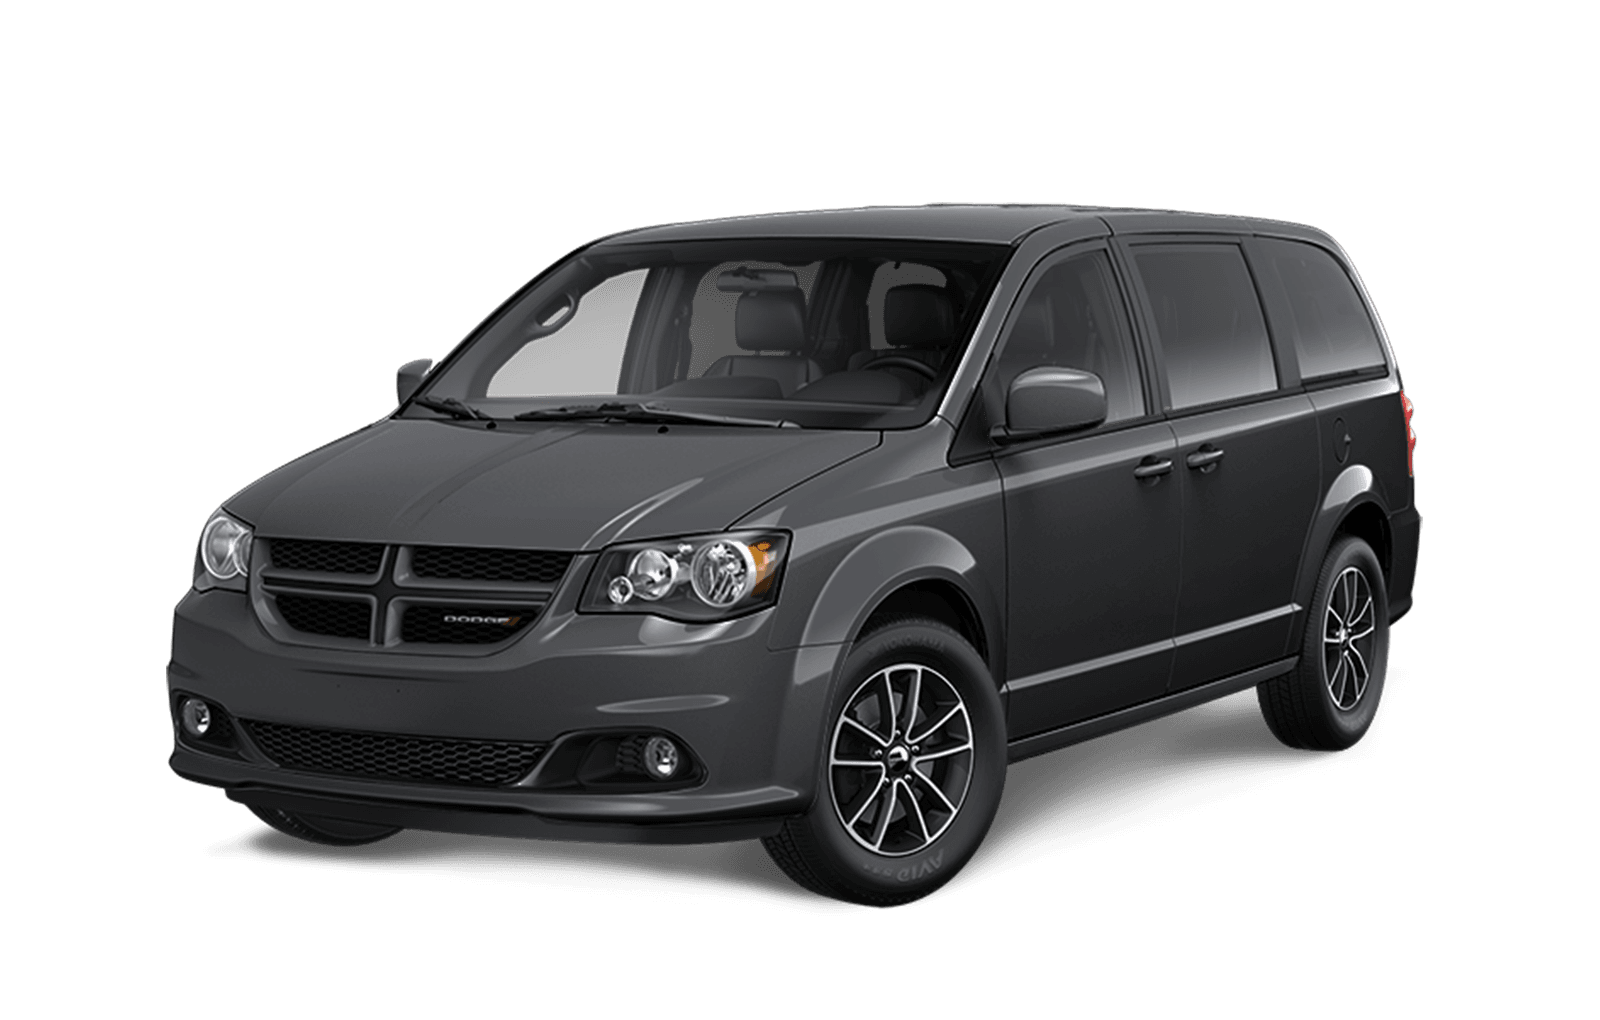 37 All New 2020 Dodge Grand Caravan Gt Rumors